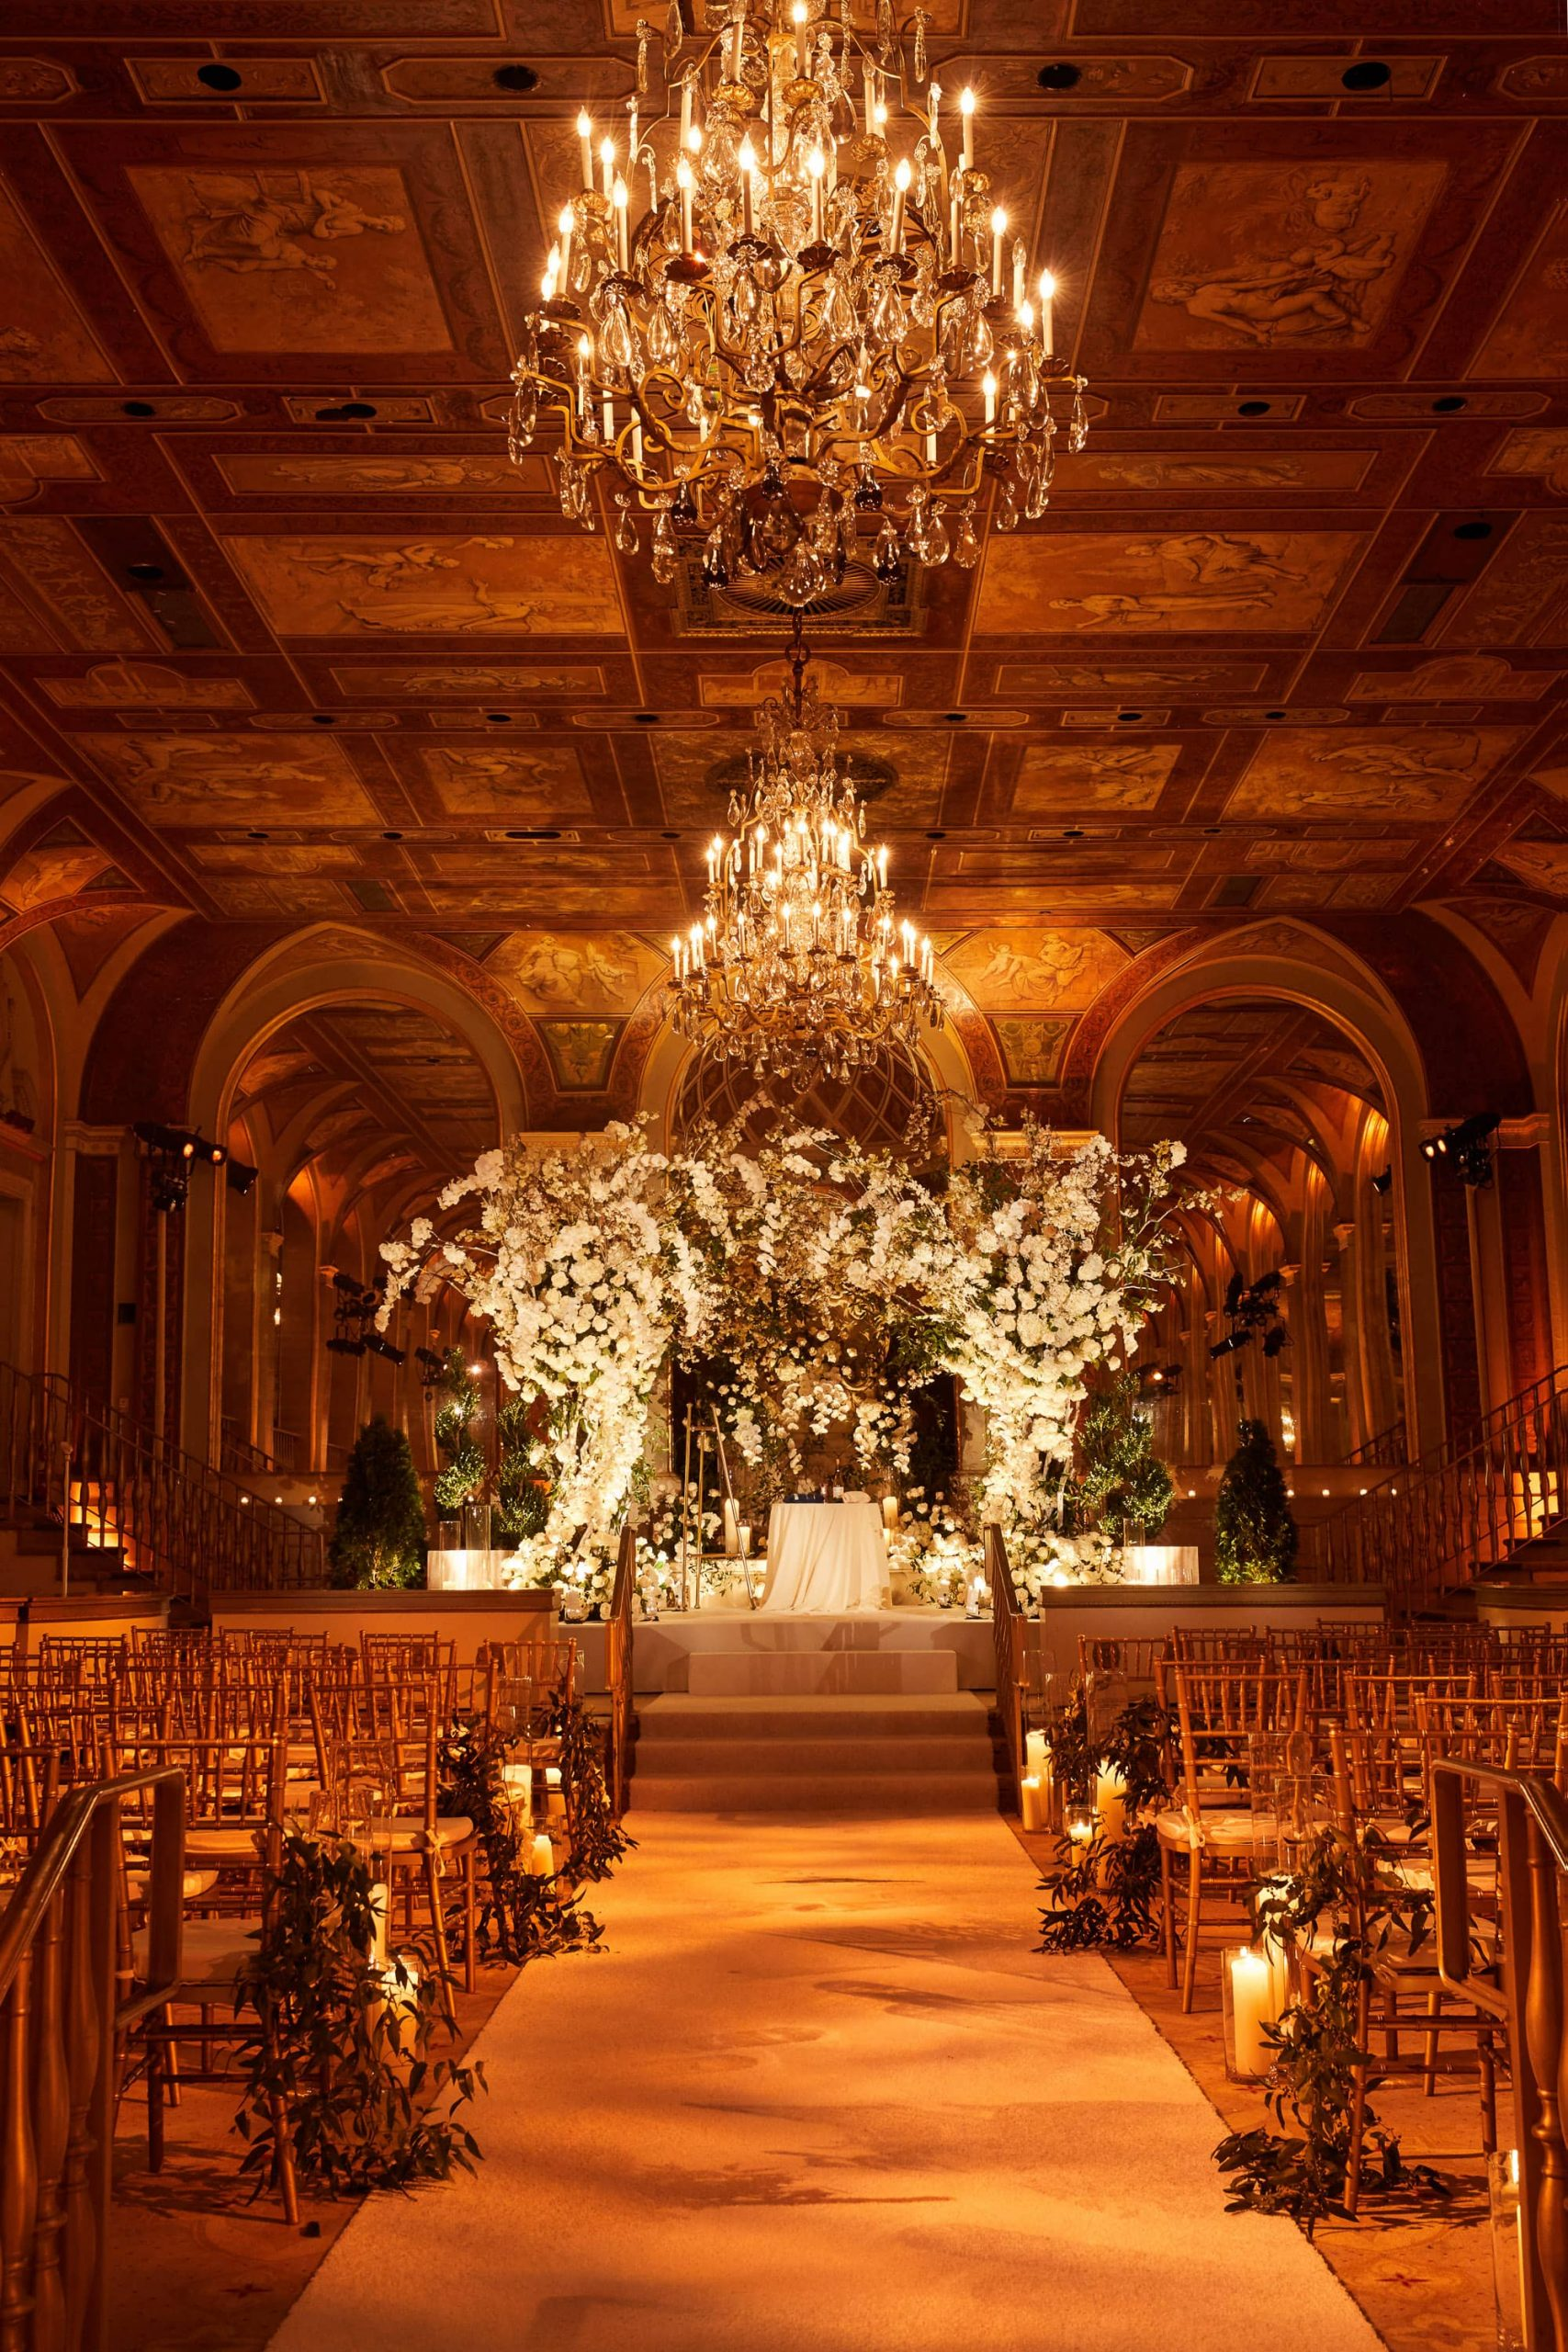 Ceremony with gorgeous floral chuppah designed by Ed Libby at this classic autumn wedding at The Plaza in NYC | Photo by Christian Oth Studio